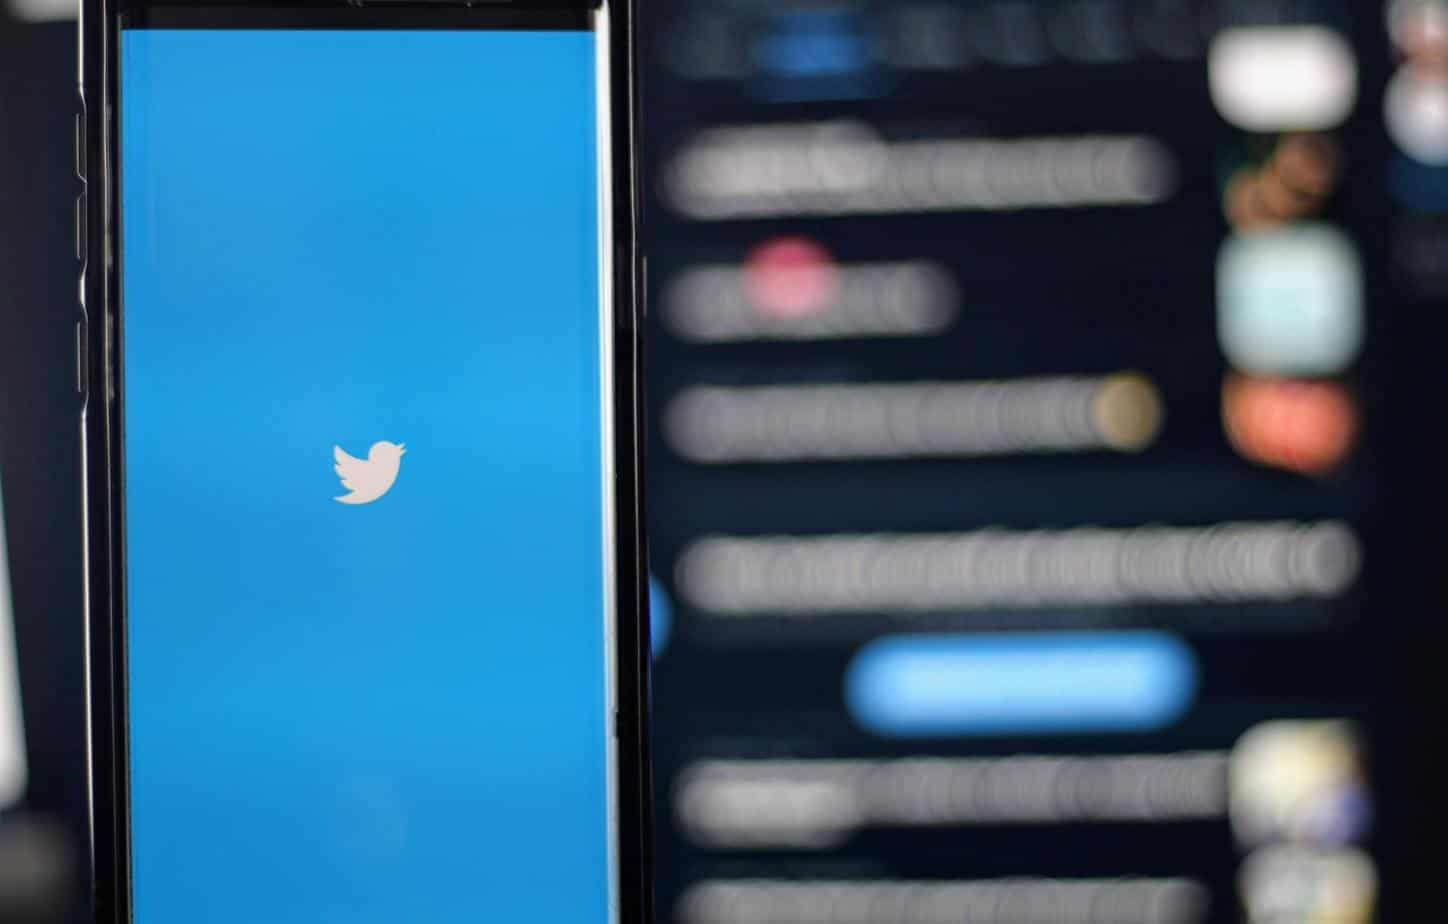 Twitter Downvote and Upvote feature is coming soon